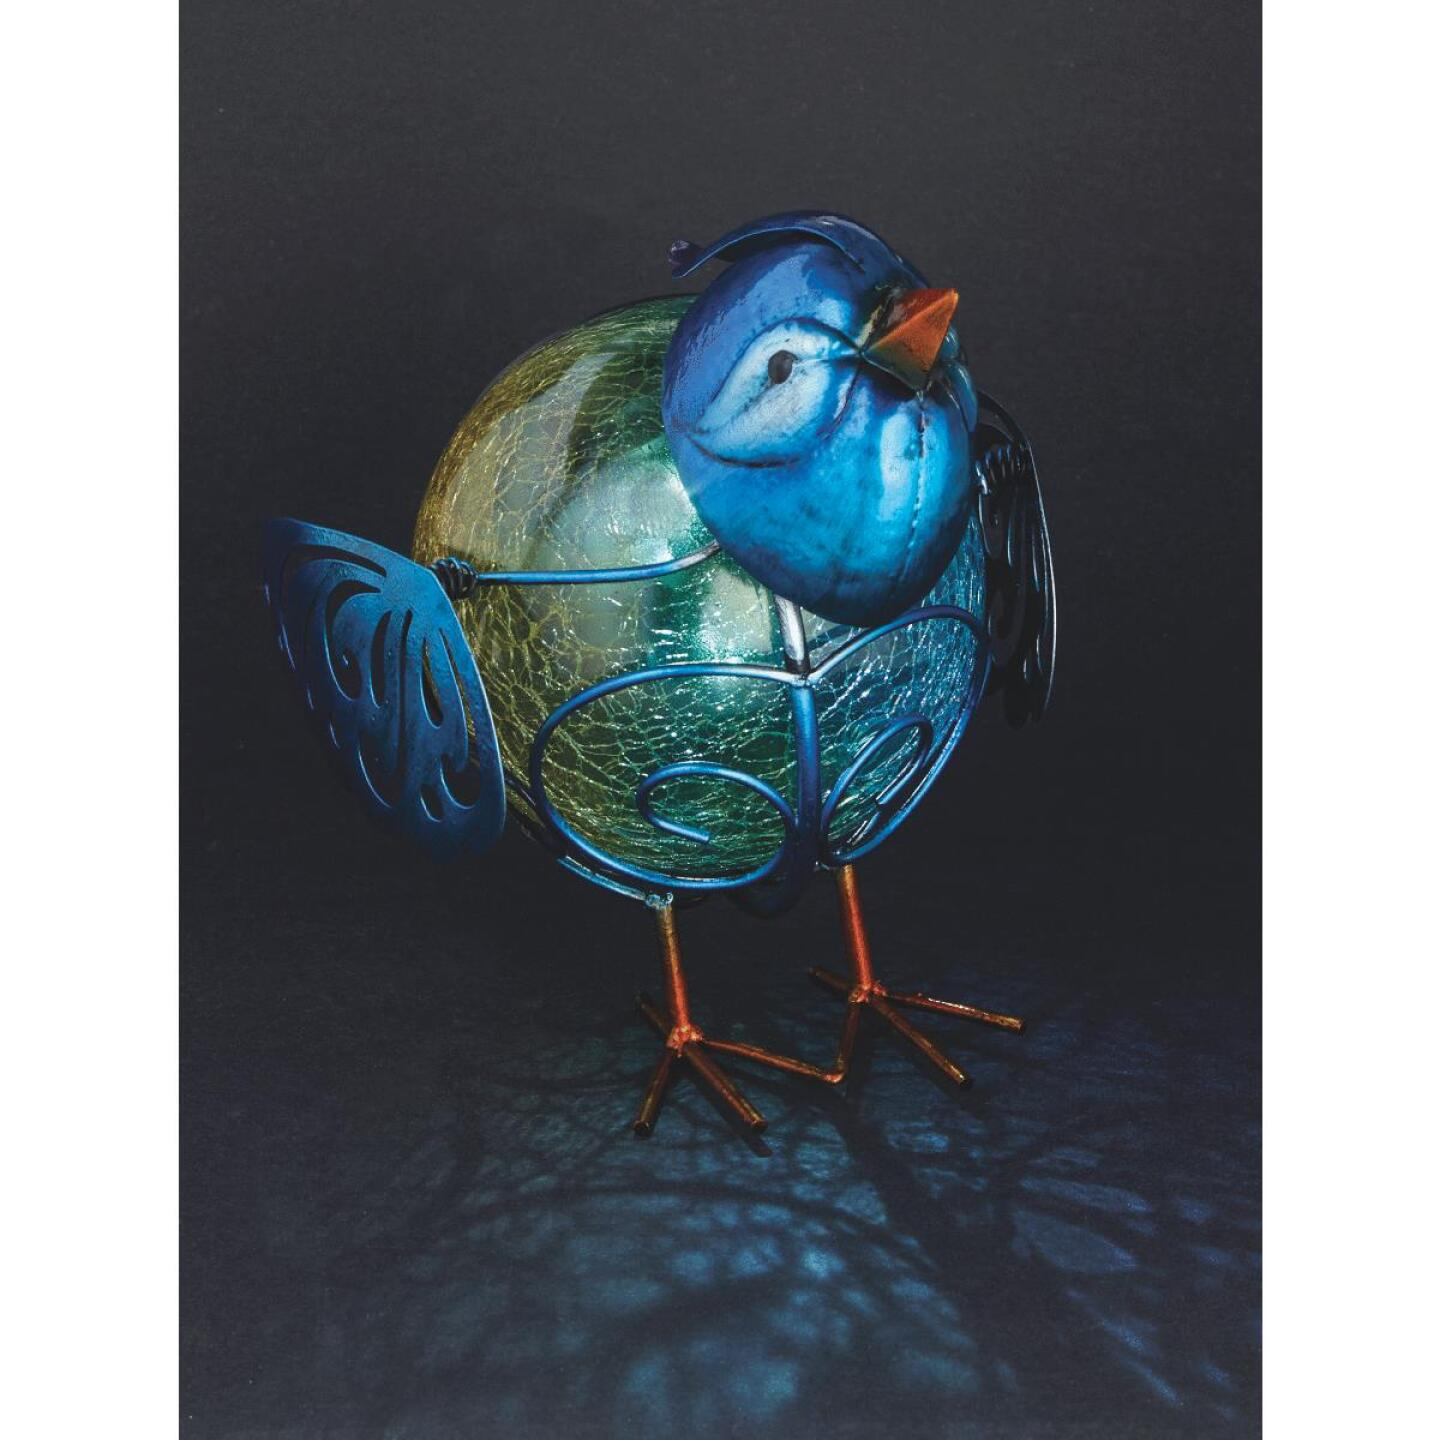 Outdoor Expressions 7.5 In. H. x 6 In. Dia. Bird Solar Light Image 2